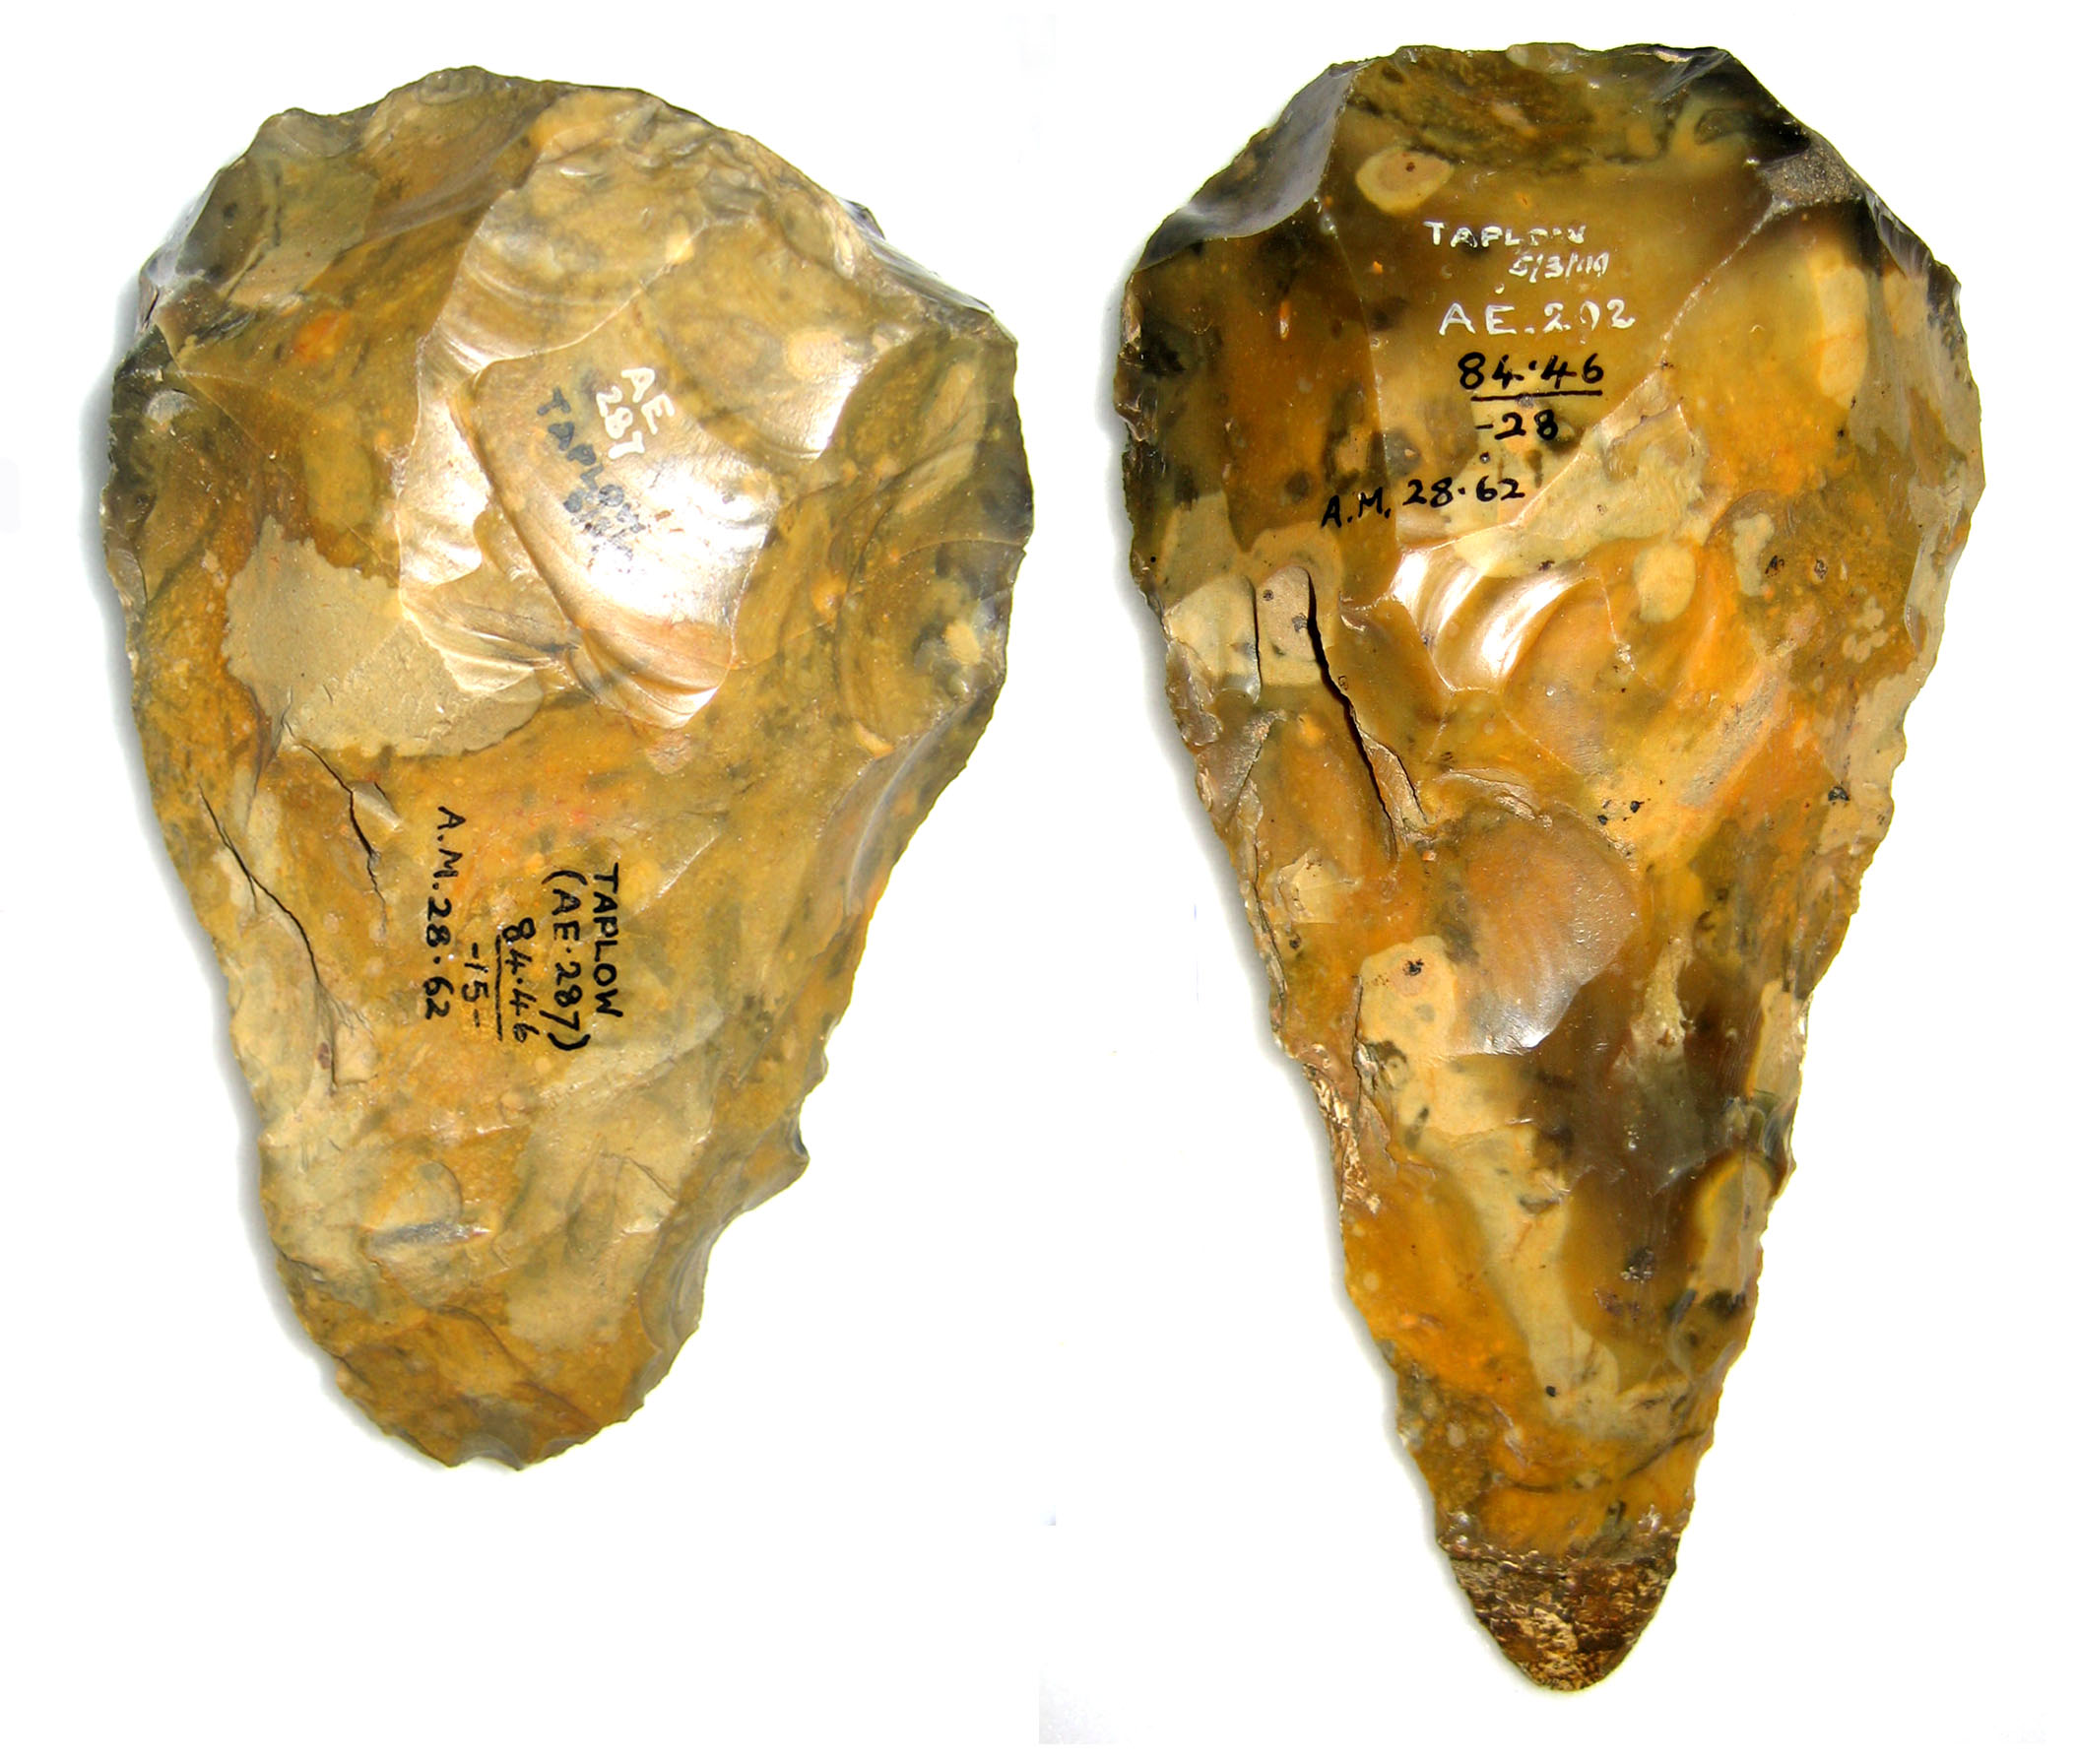 Dating hand axes